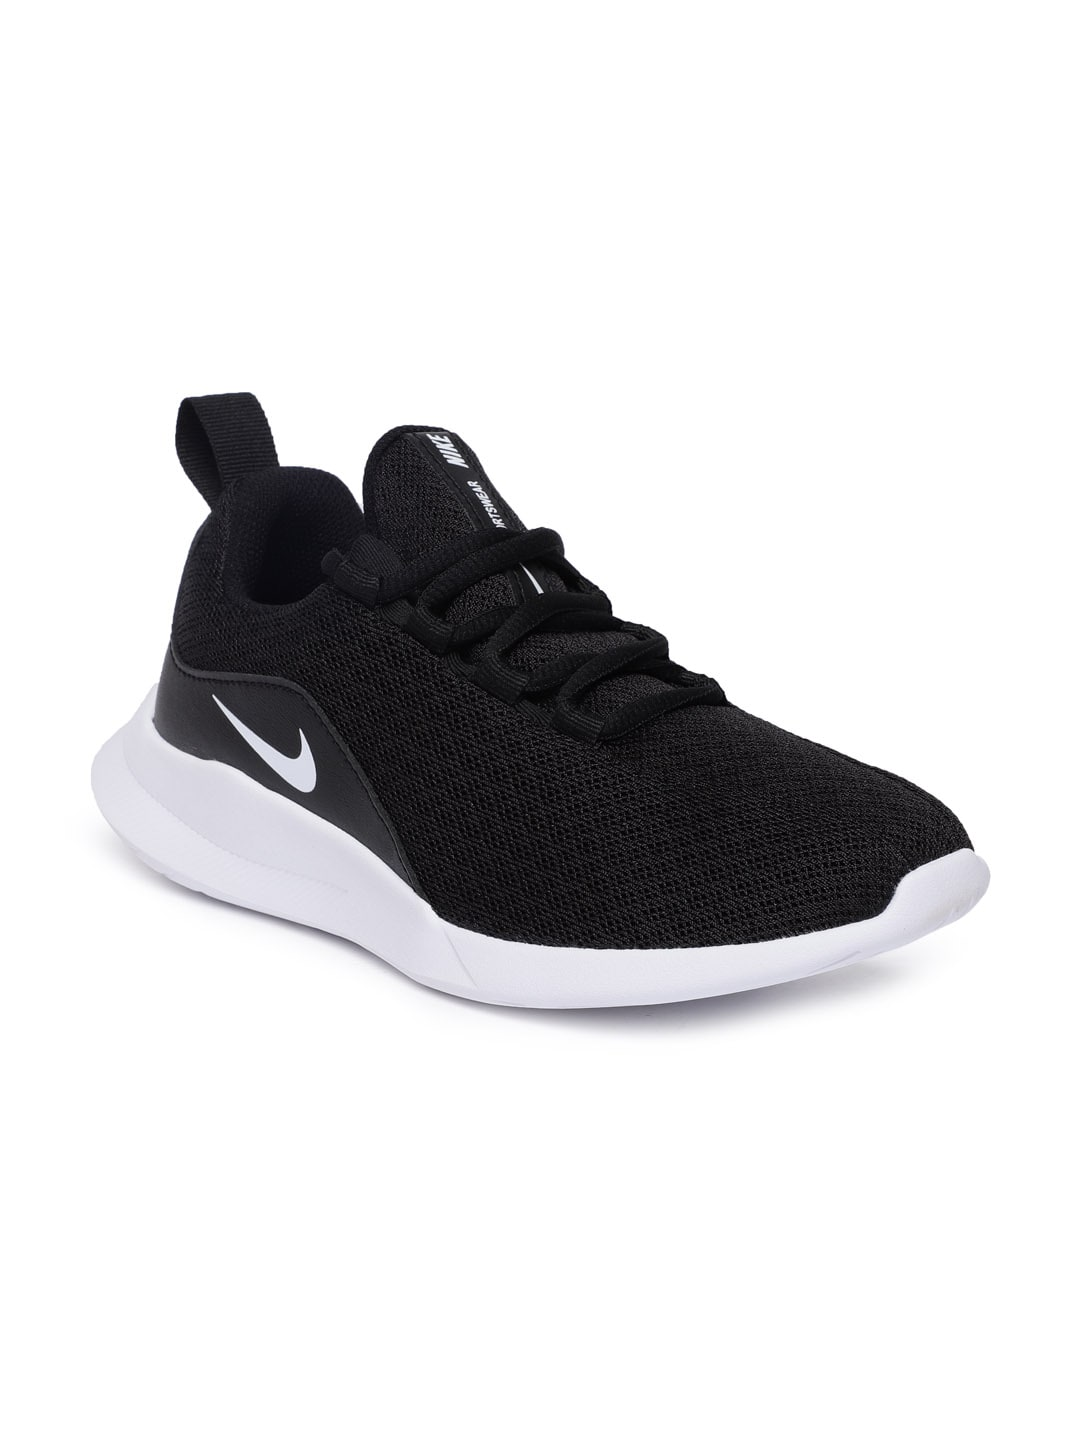 78bd209cad5d80 Nike Mfh - Buy Nike Mfh online in India